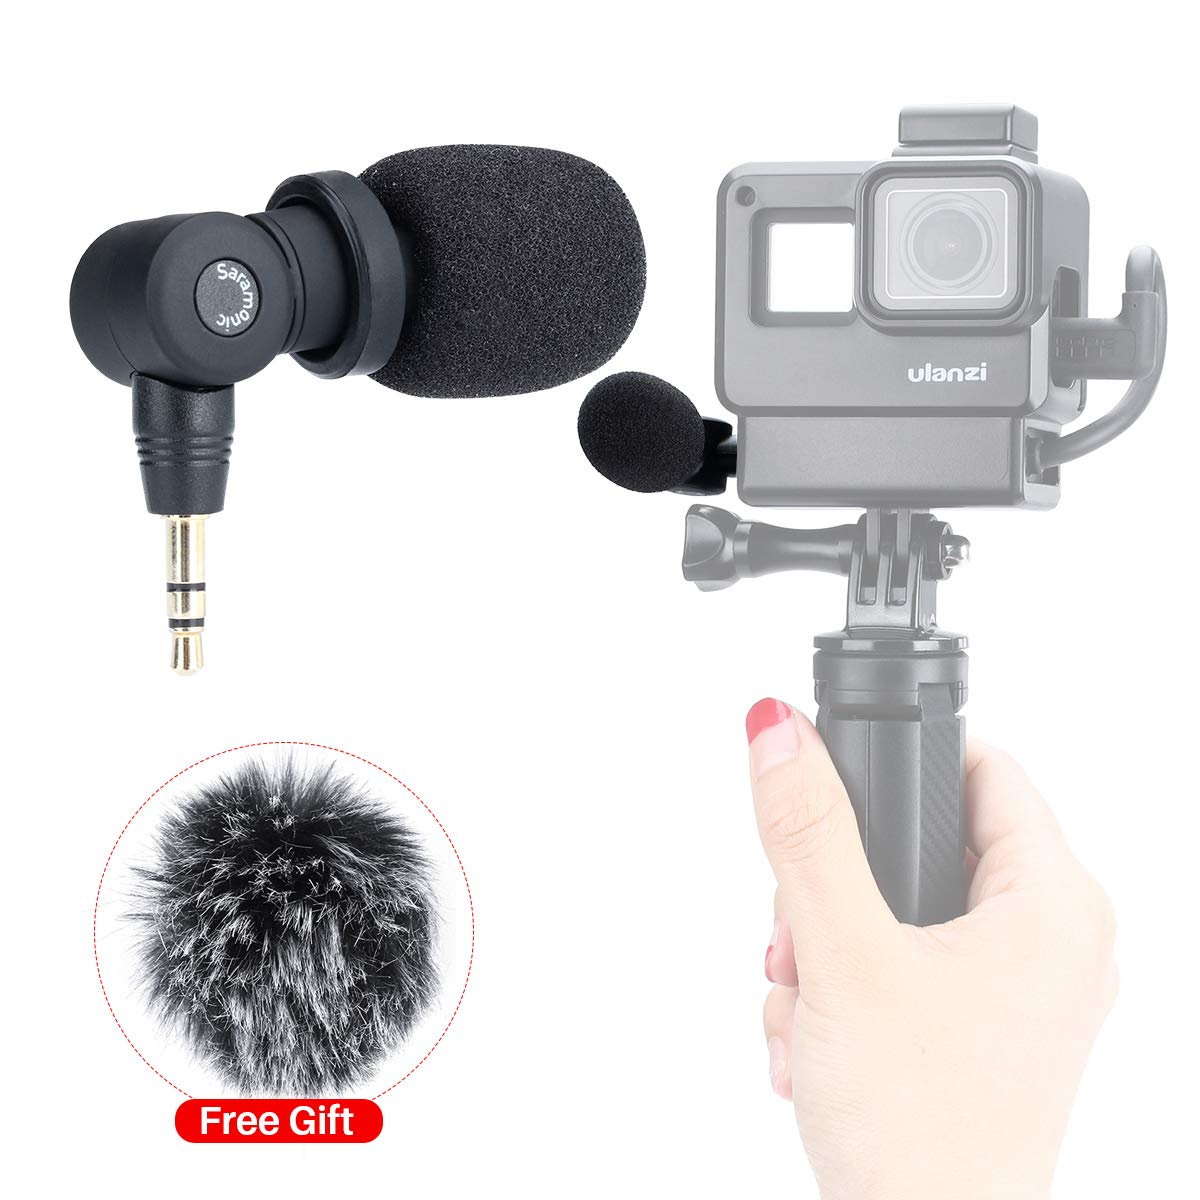 Saramonic SR-XM1 Mini Vlog Microphone for Gopro,Wireless Video Mic 3.5mm TRS Omnidirectional Microphone Plug and Play Mic for Gopro 7 6 5 DSLR Cameras, Camcorders, CaMixer, SmartMixer, LavMic Vlogging by Saramonic